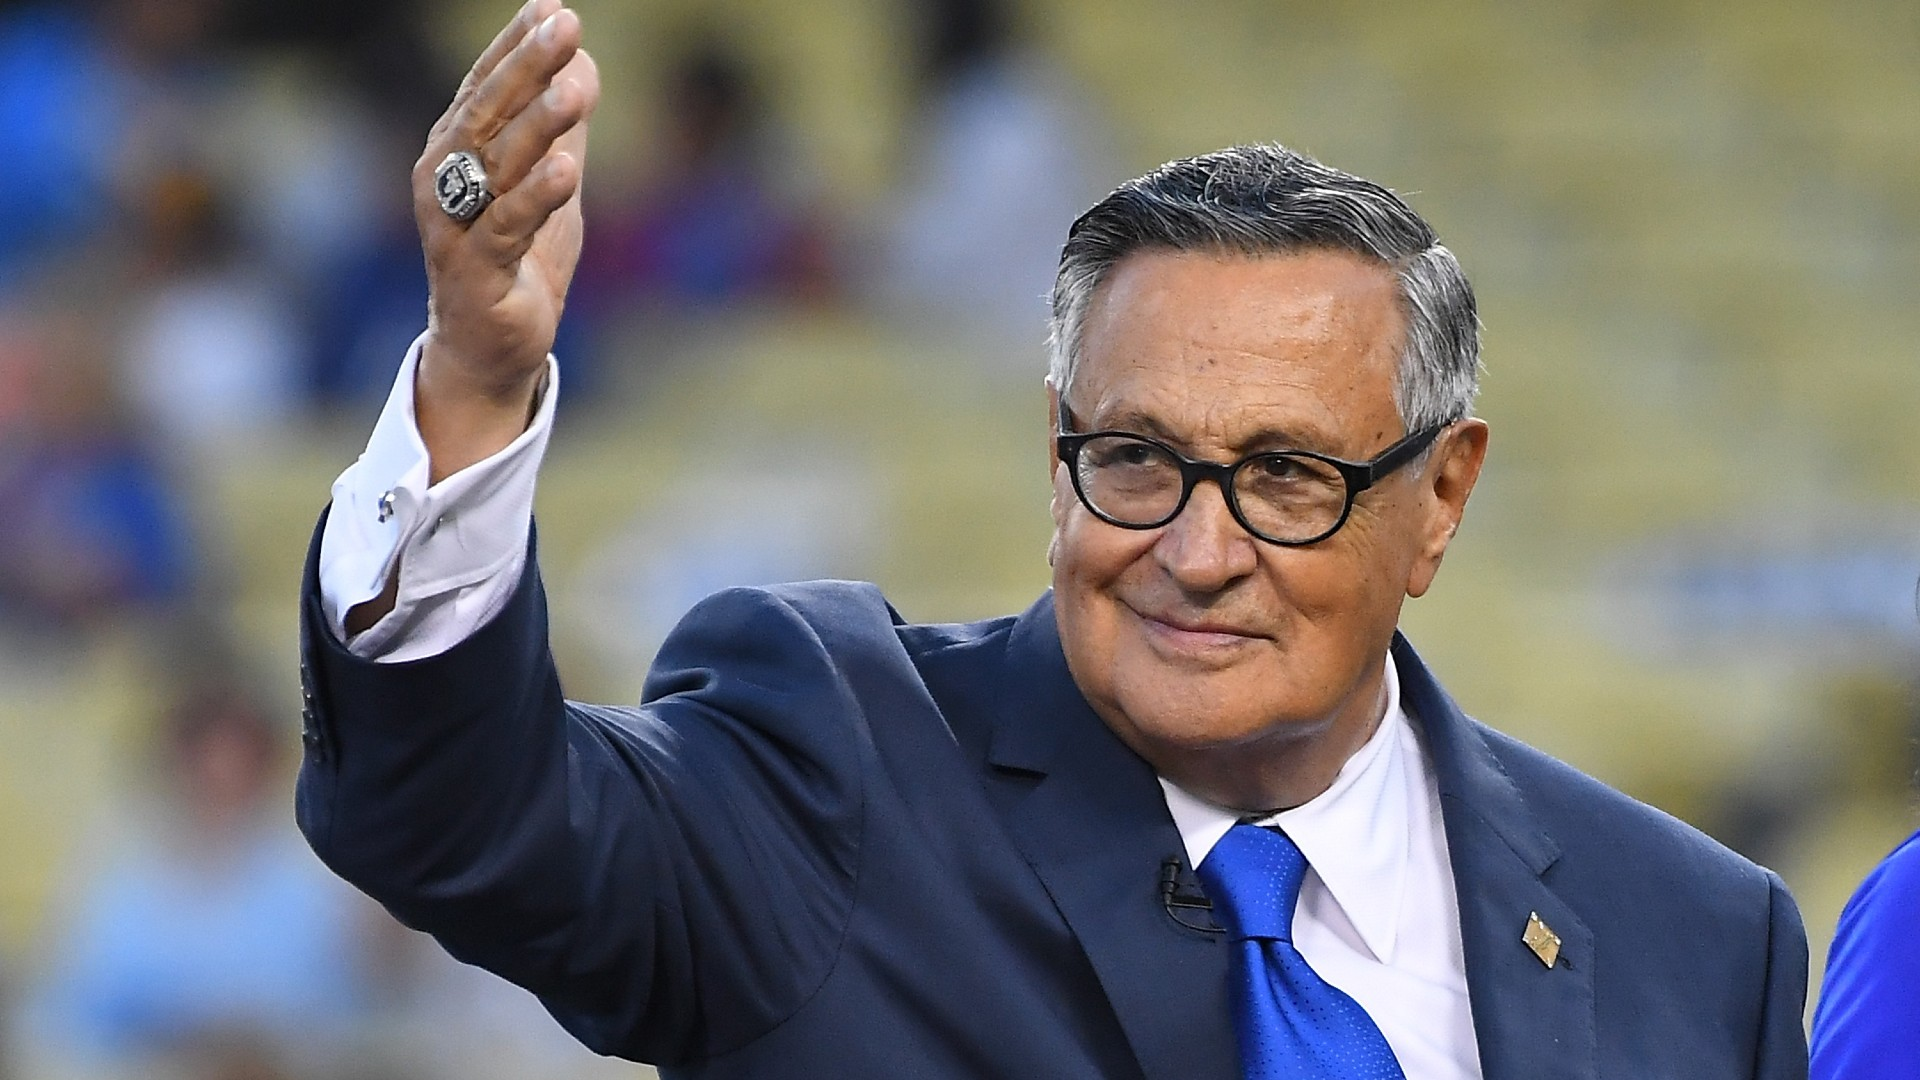 Longtime Los Angeles Dodgers broadcaster Jaime Jarrin acknowledges the crowd after being inducted into the Dodger Stadium Ring of Honor the game against the San Diego Paders at Dodger Stadium on September 2, 2018. (Jayne Kamin-Oncea/Getty Images)